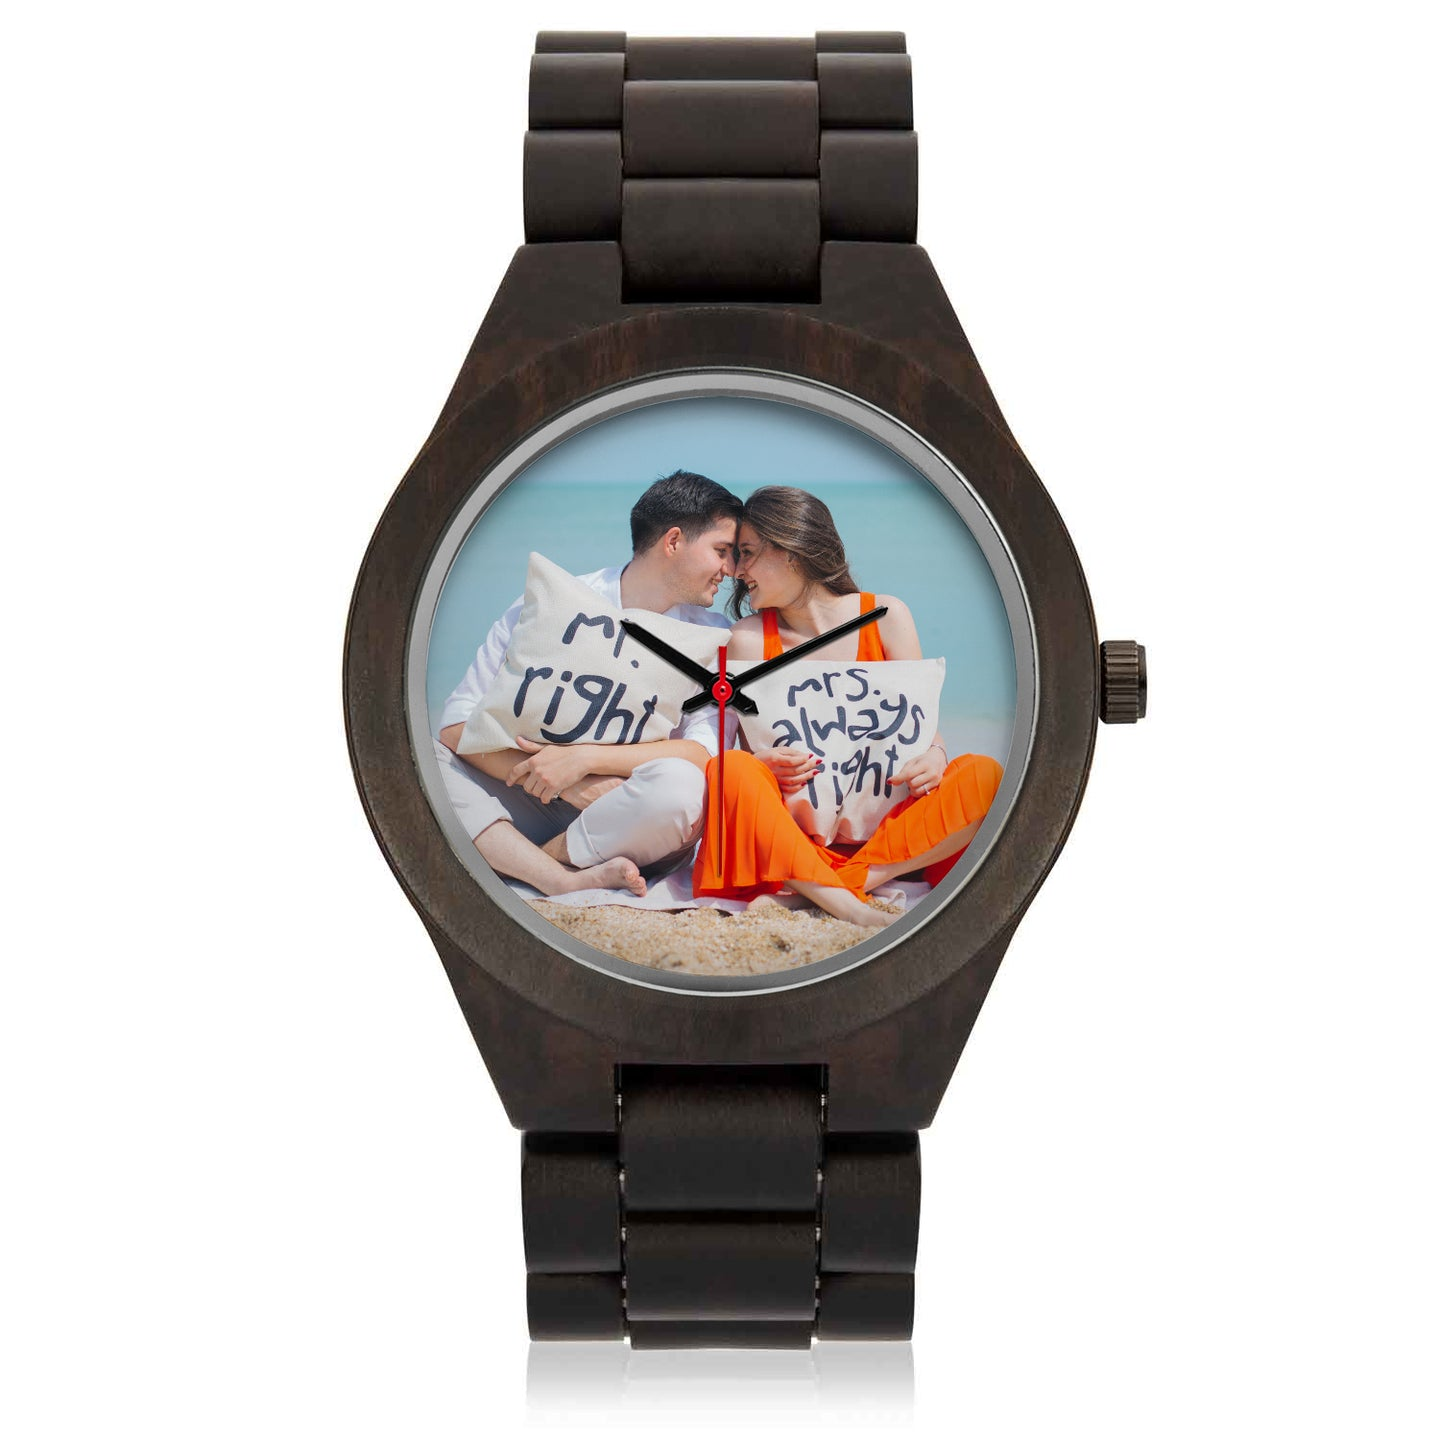 Personalized Wood Watch - Honeybee's Tees